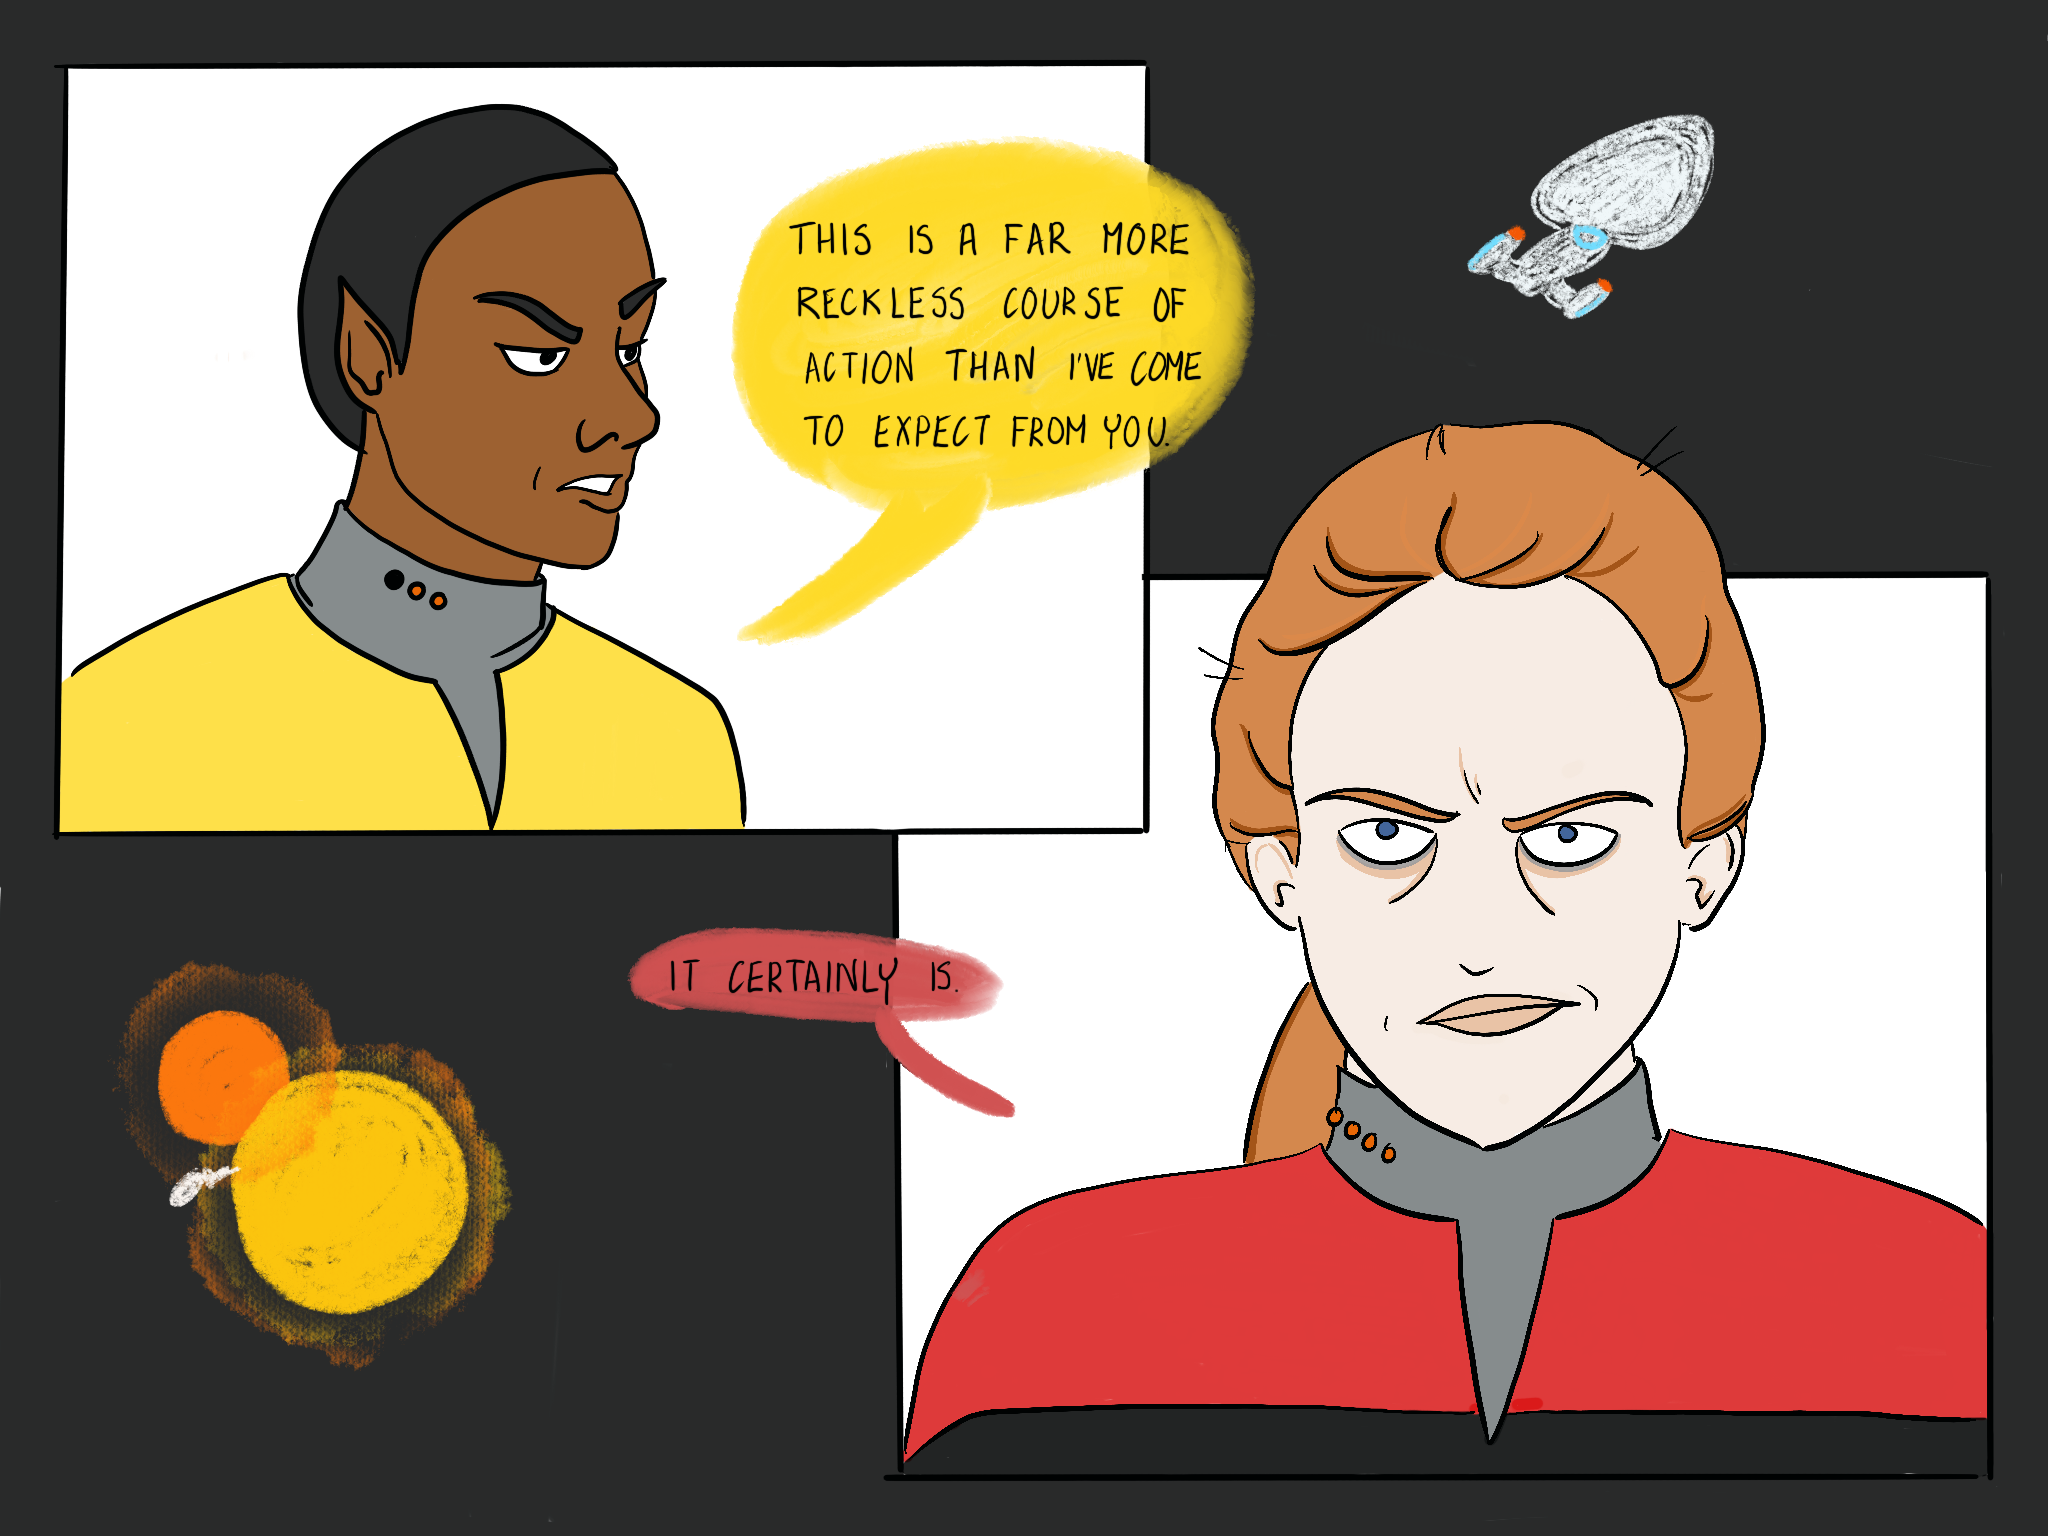 """A crude cartoon depicting Tuvok and Janeway's exchange (""""This is a far more reckless course of action than I have come to expect from you"""") as she flies Voyager through the binary stars."""